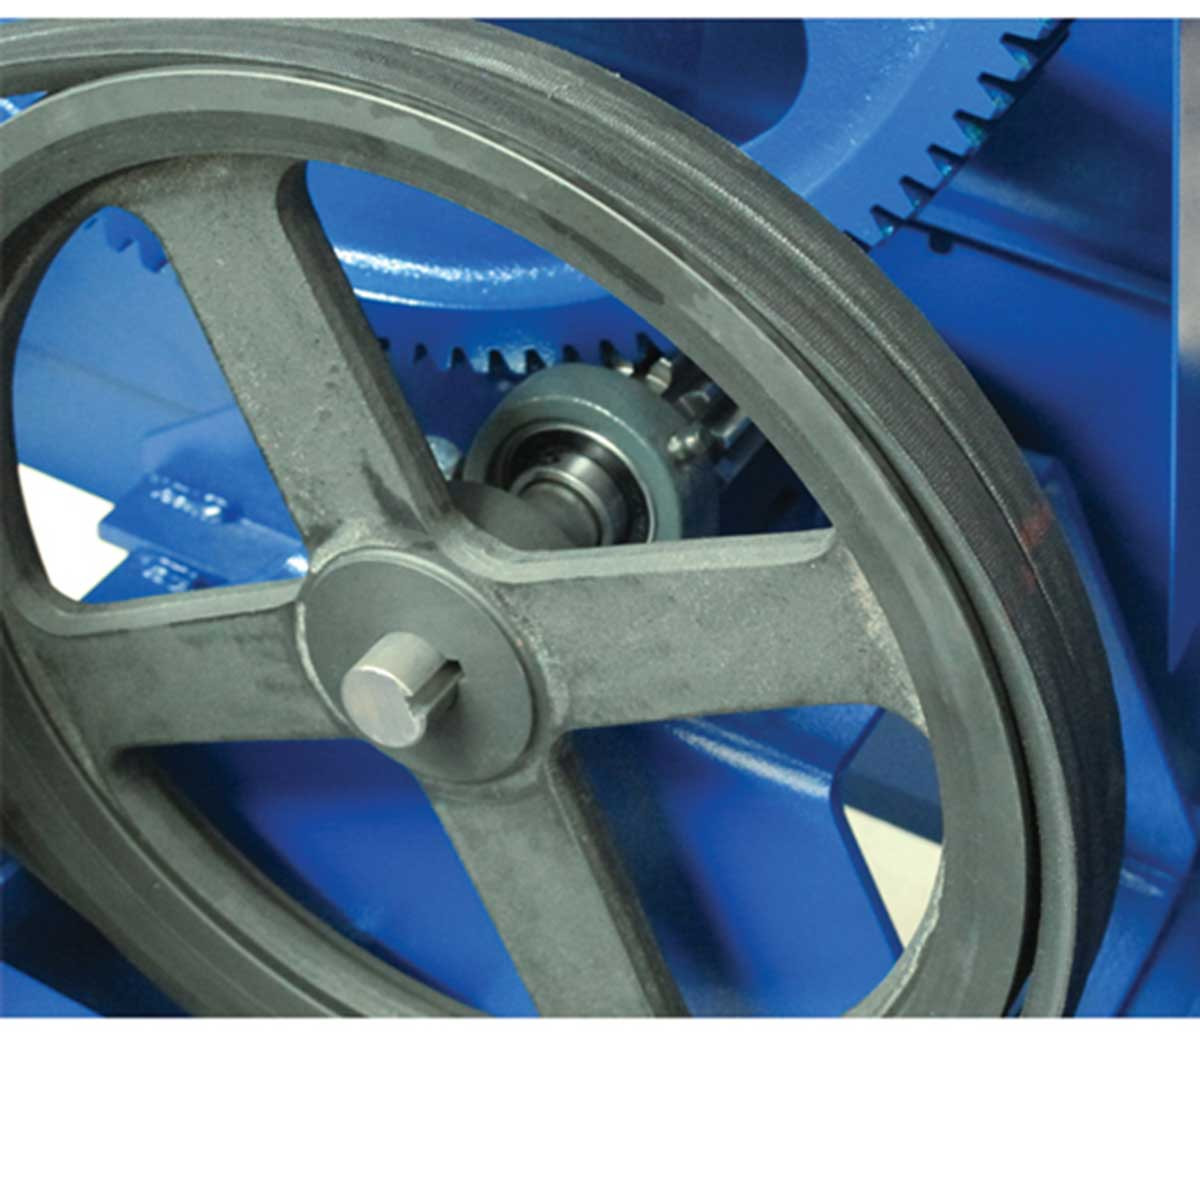 Cleform Gilson mixer belt drive